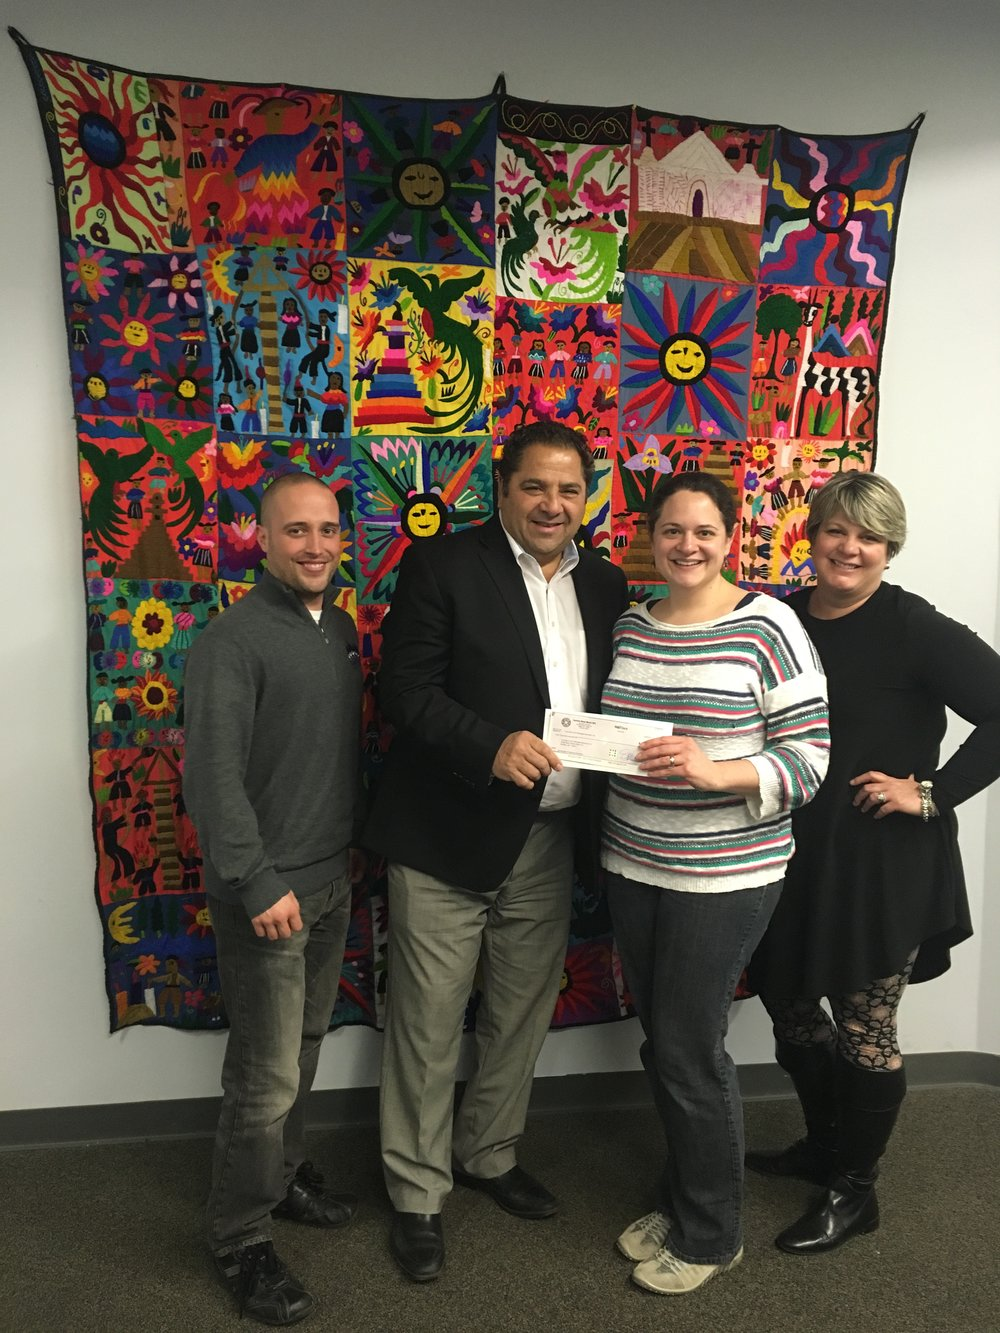 Pictured Left To Right: JERS Director of Finance, Jeff Knapp; Steven Carmina, Partner; Karen Andolina Scott; and Pamela Timby-Straitiff, Partner.